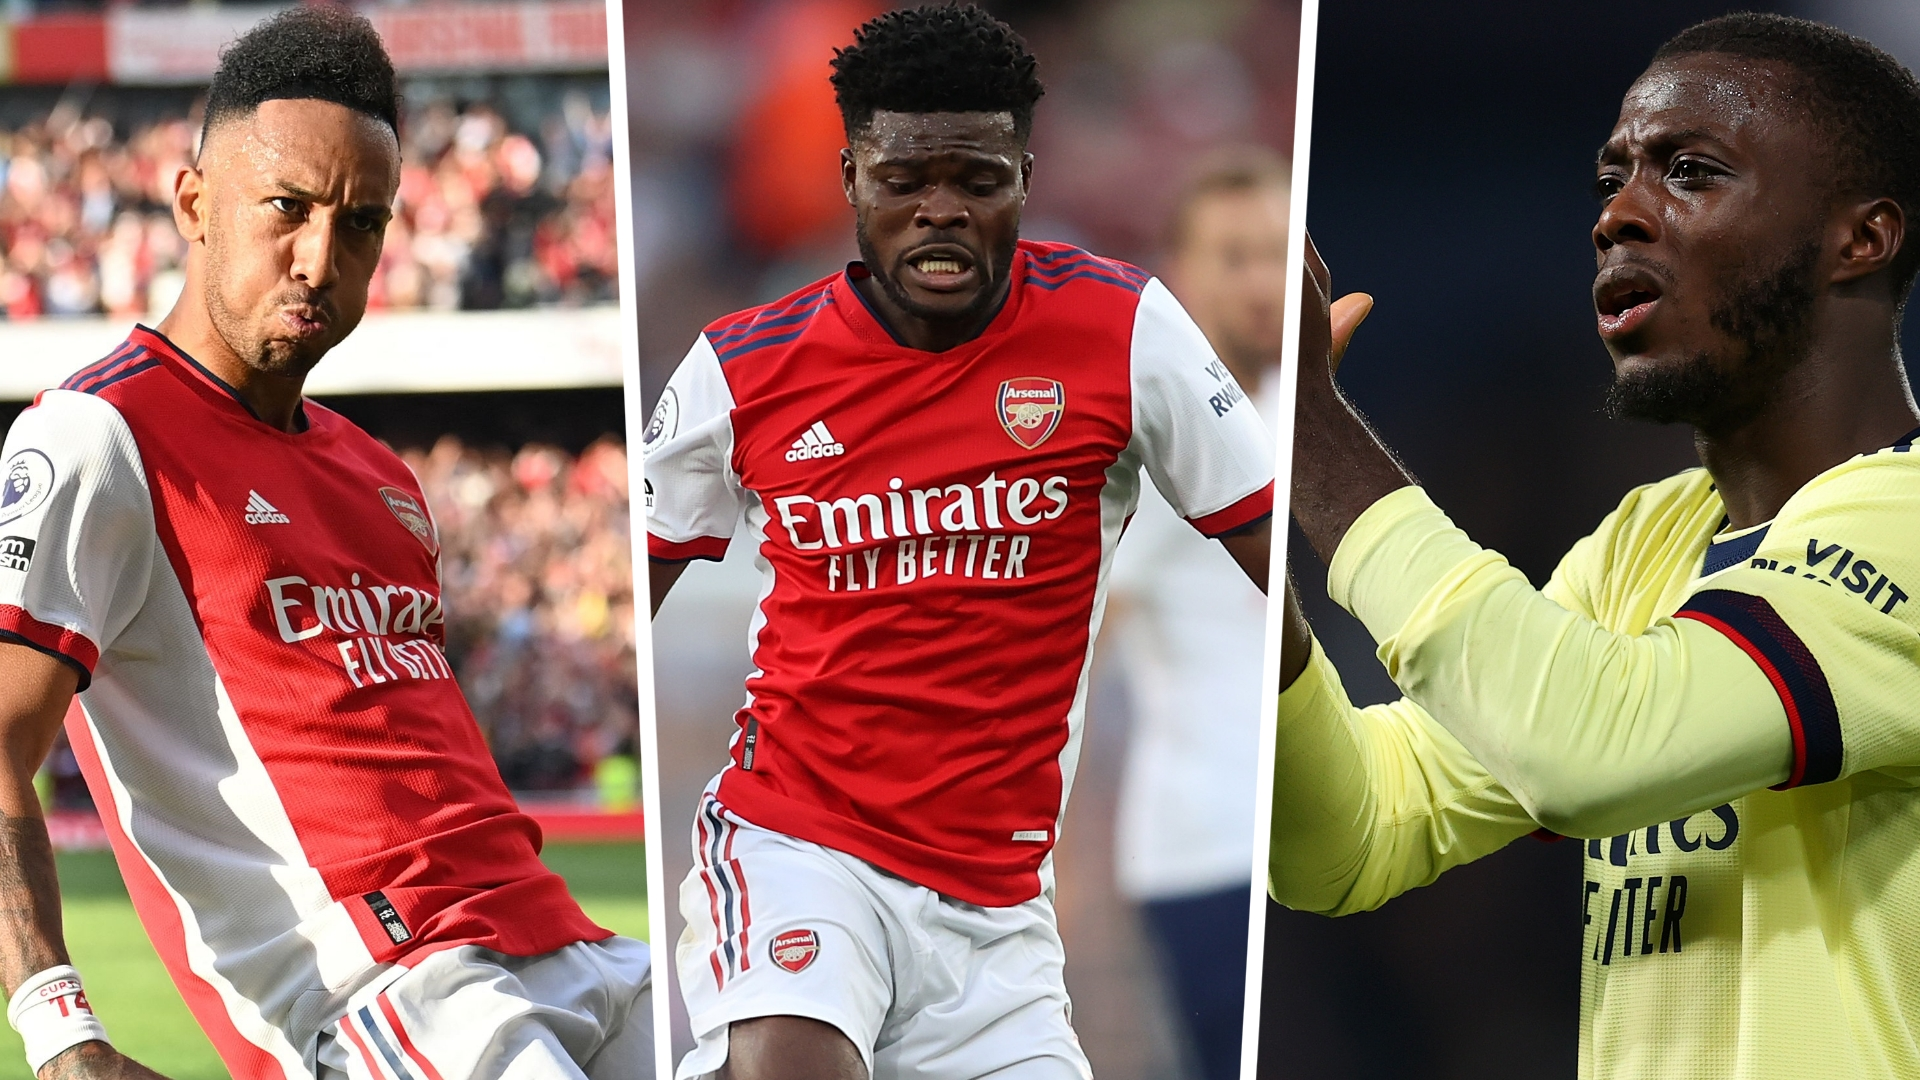 Afcon 2021: Arsenal may have to find replacements for Aubameyang, Partey, Pepe and Elneny – Arteta